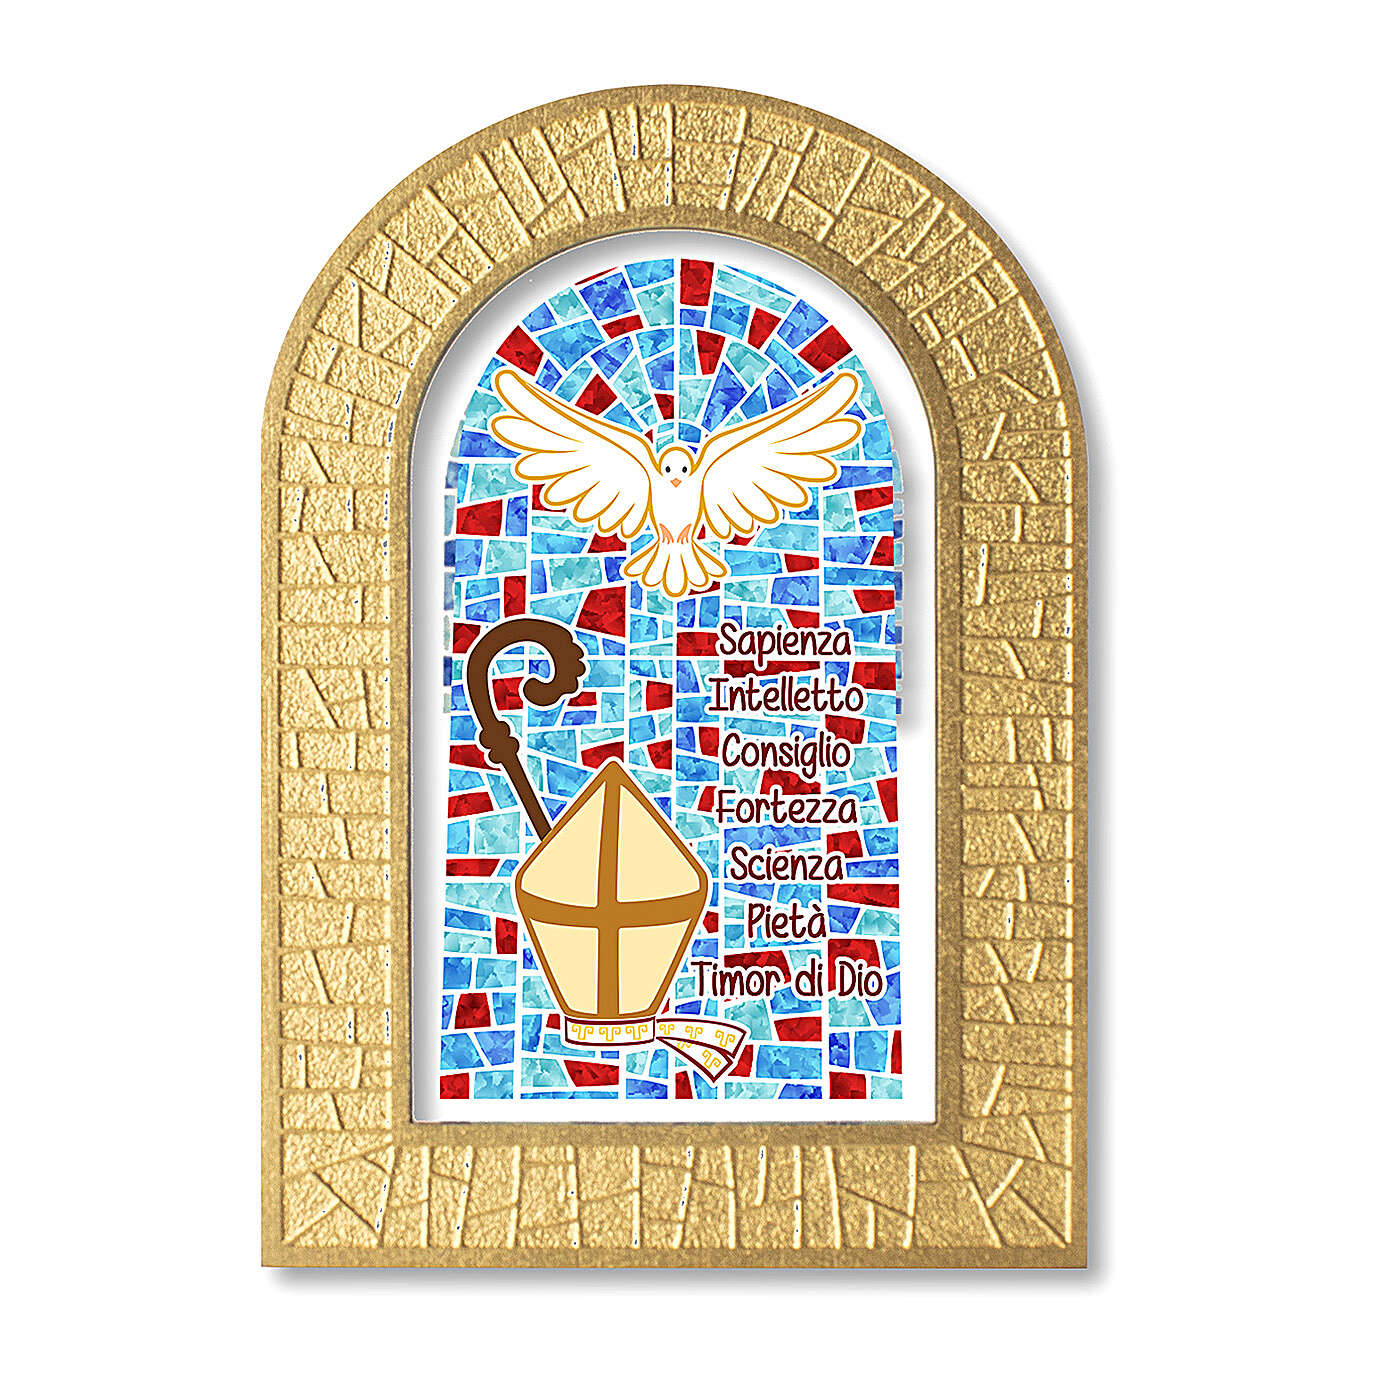 Confirmation stained glass window Holy Spirit and Its Gifts 5x3.3 in 3